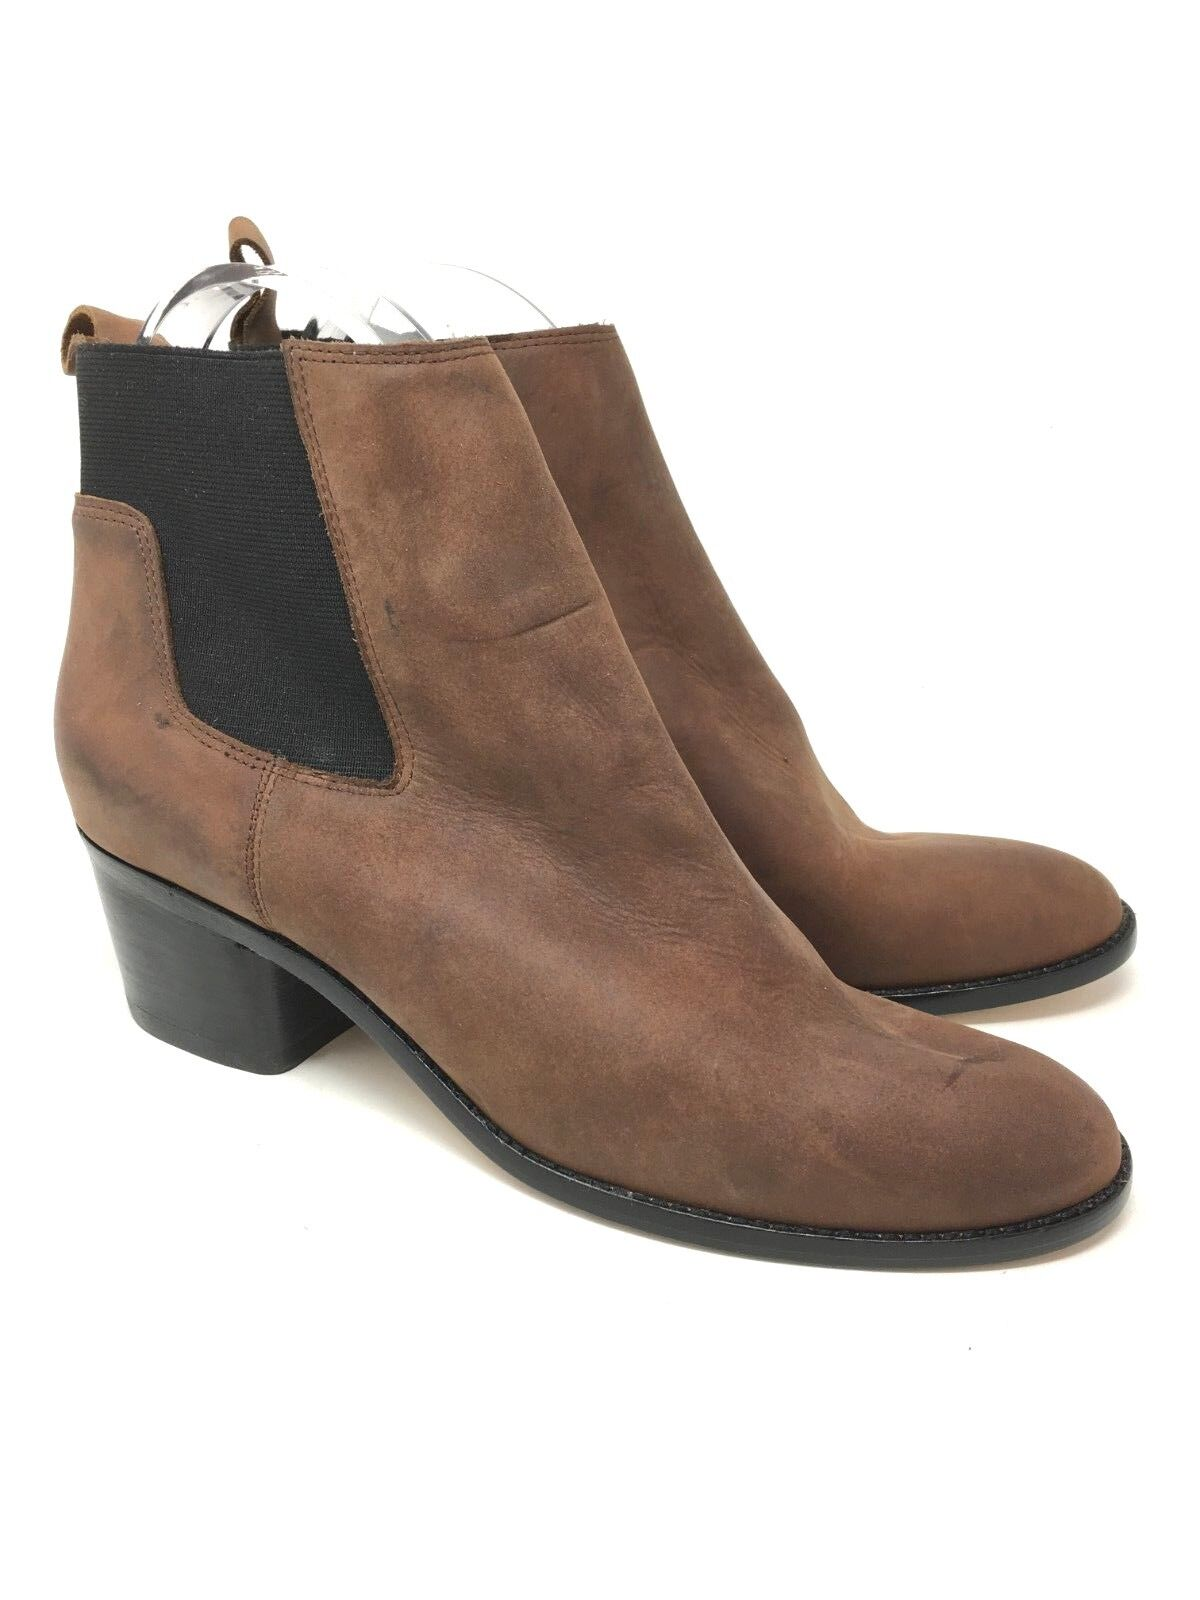 New Matt Berson Baez Brown Short Ankle Leather    Booties  Size 8.5 533753